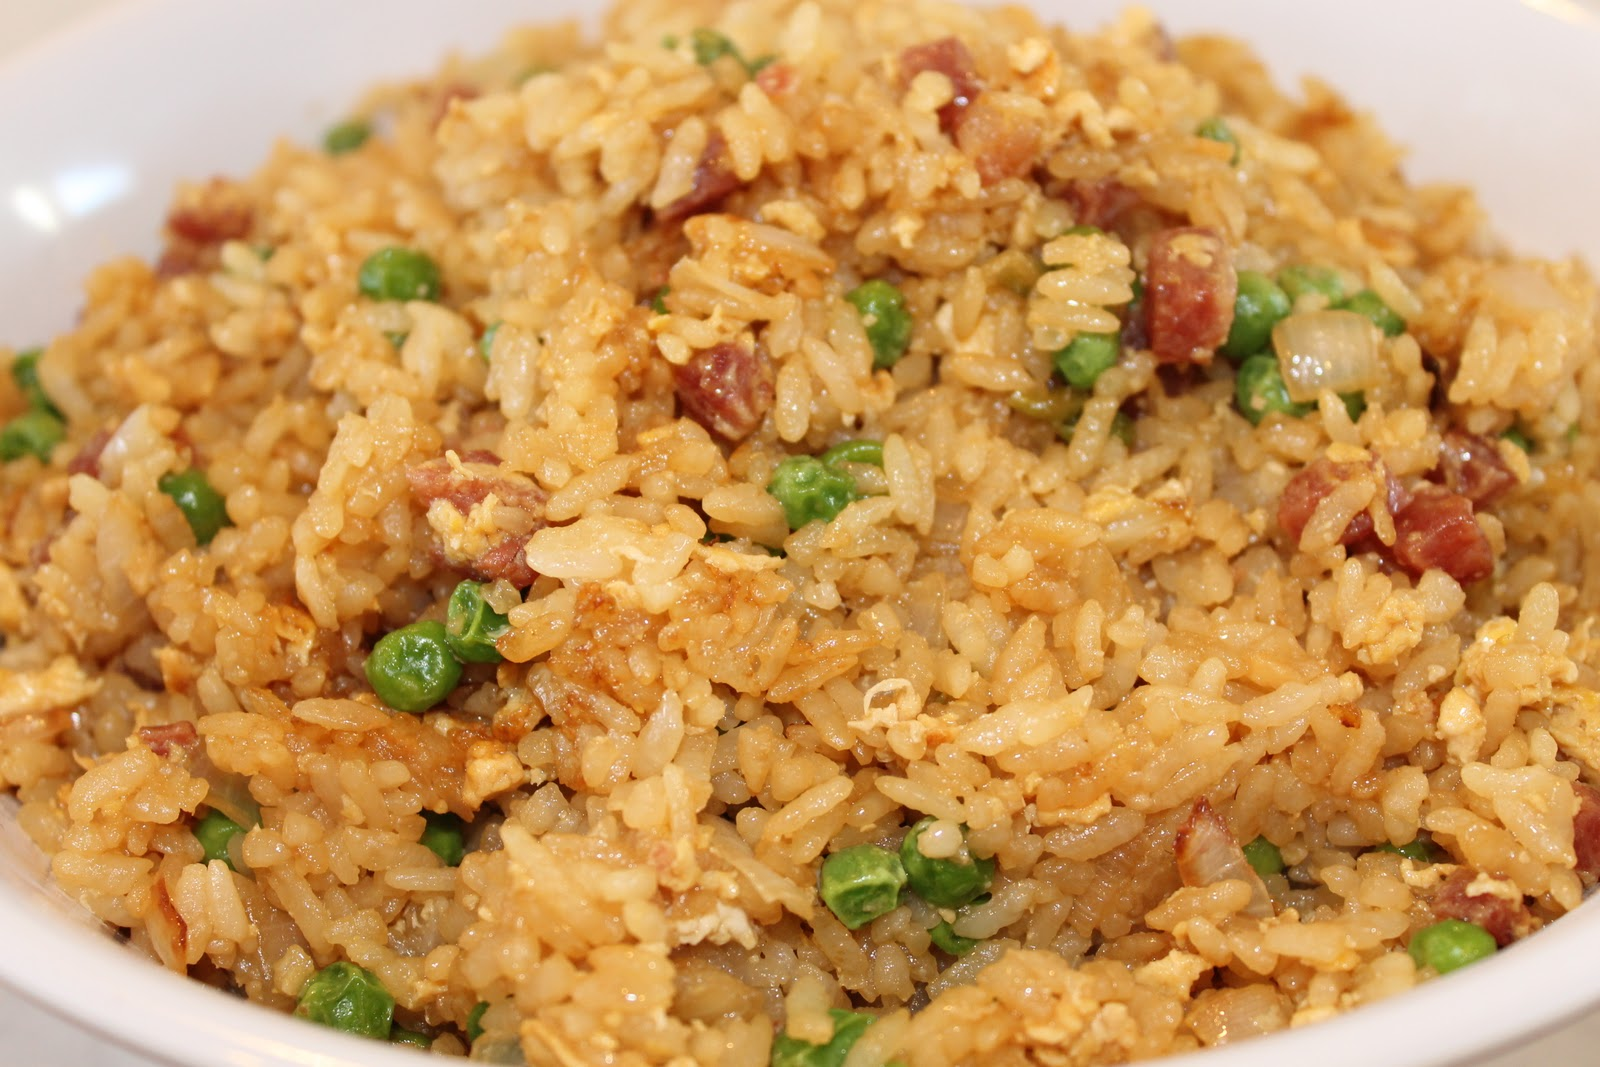 Mélange: Basic (Chinese Sausage) Fried Rice